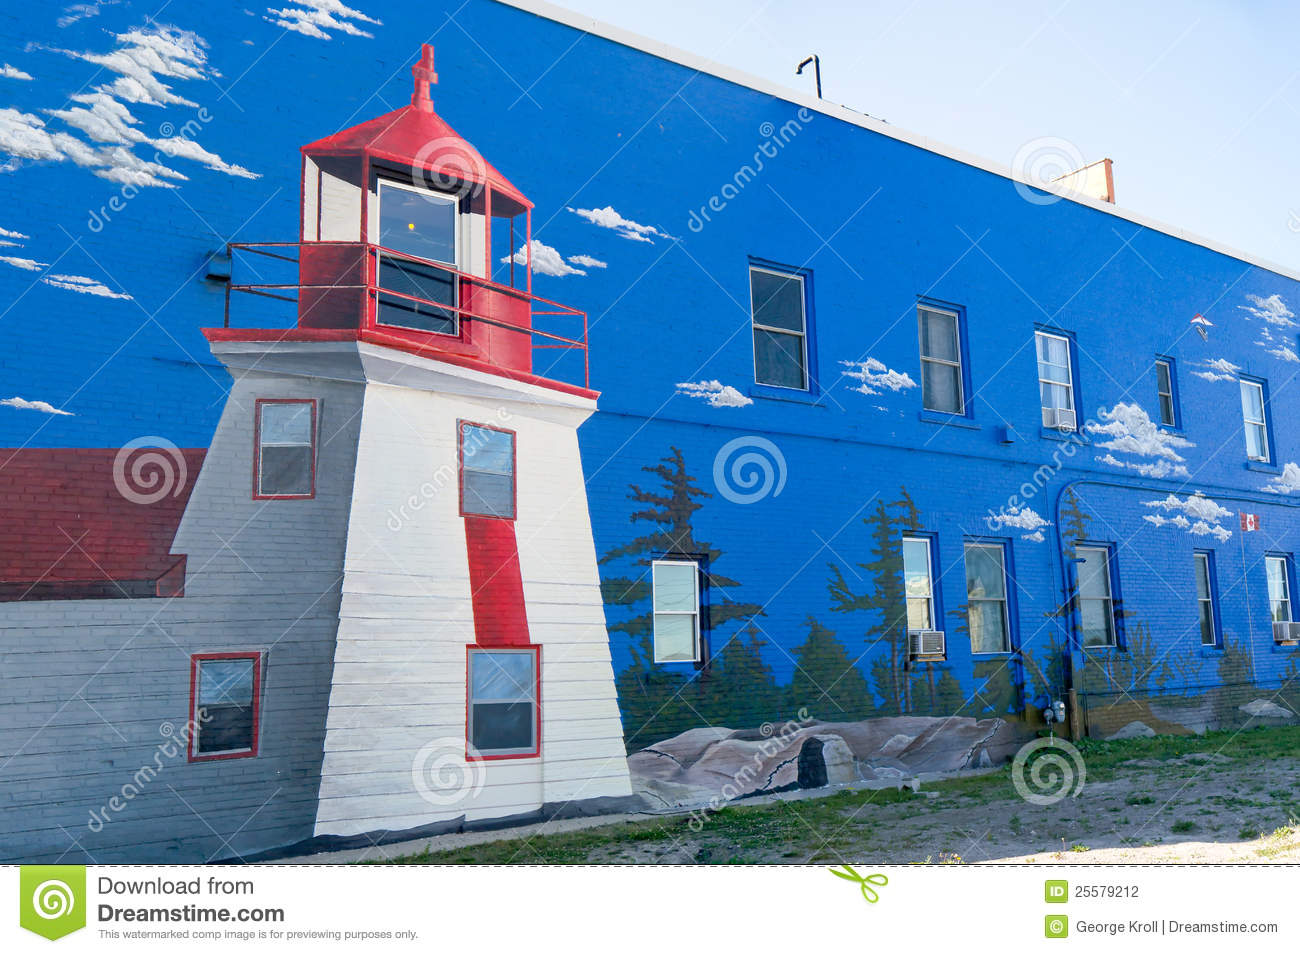 Lighthouse Mural on Wall